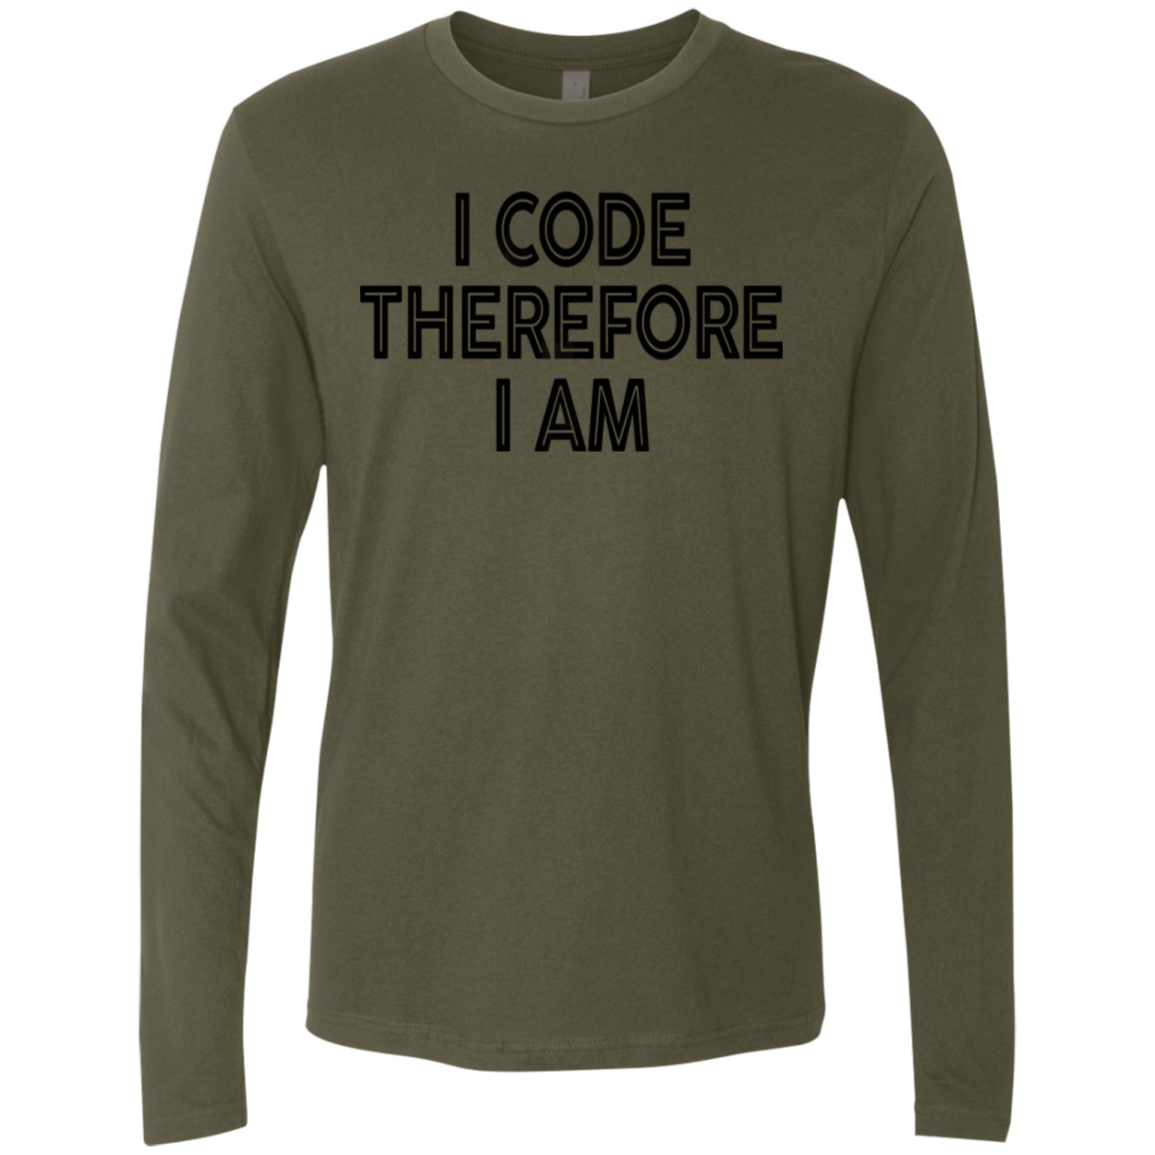 I Code Therfore I Am Men's Long Sleeve Tee